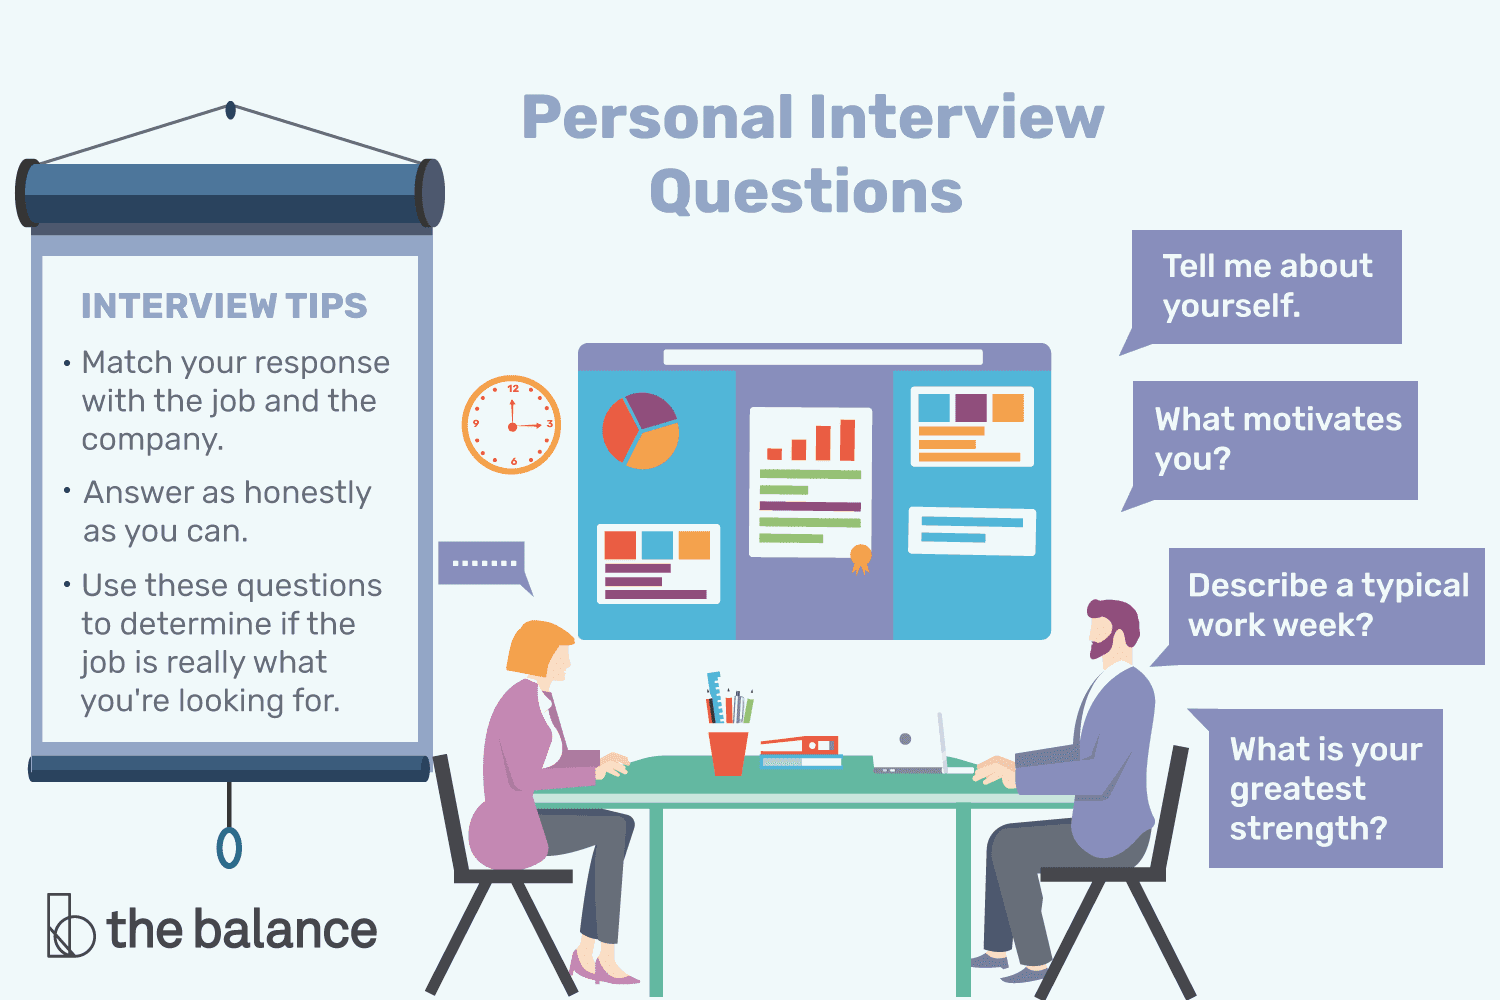 how to answer ethical interview questions